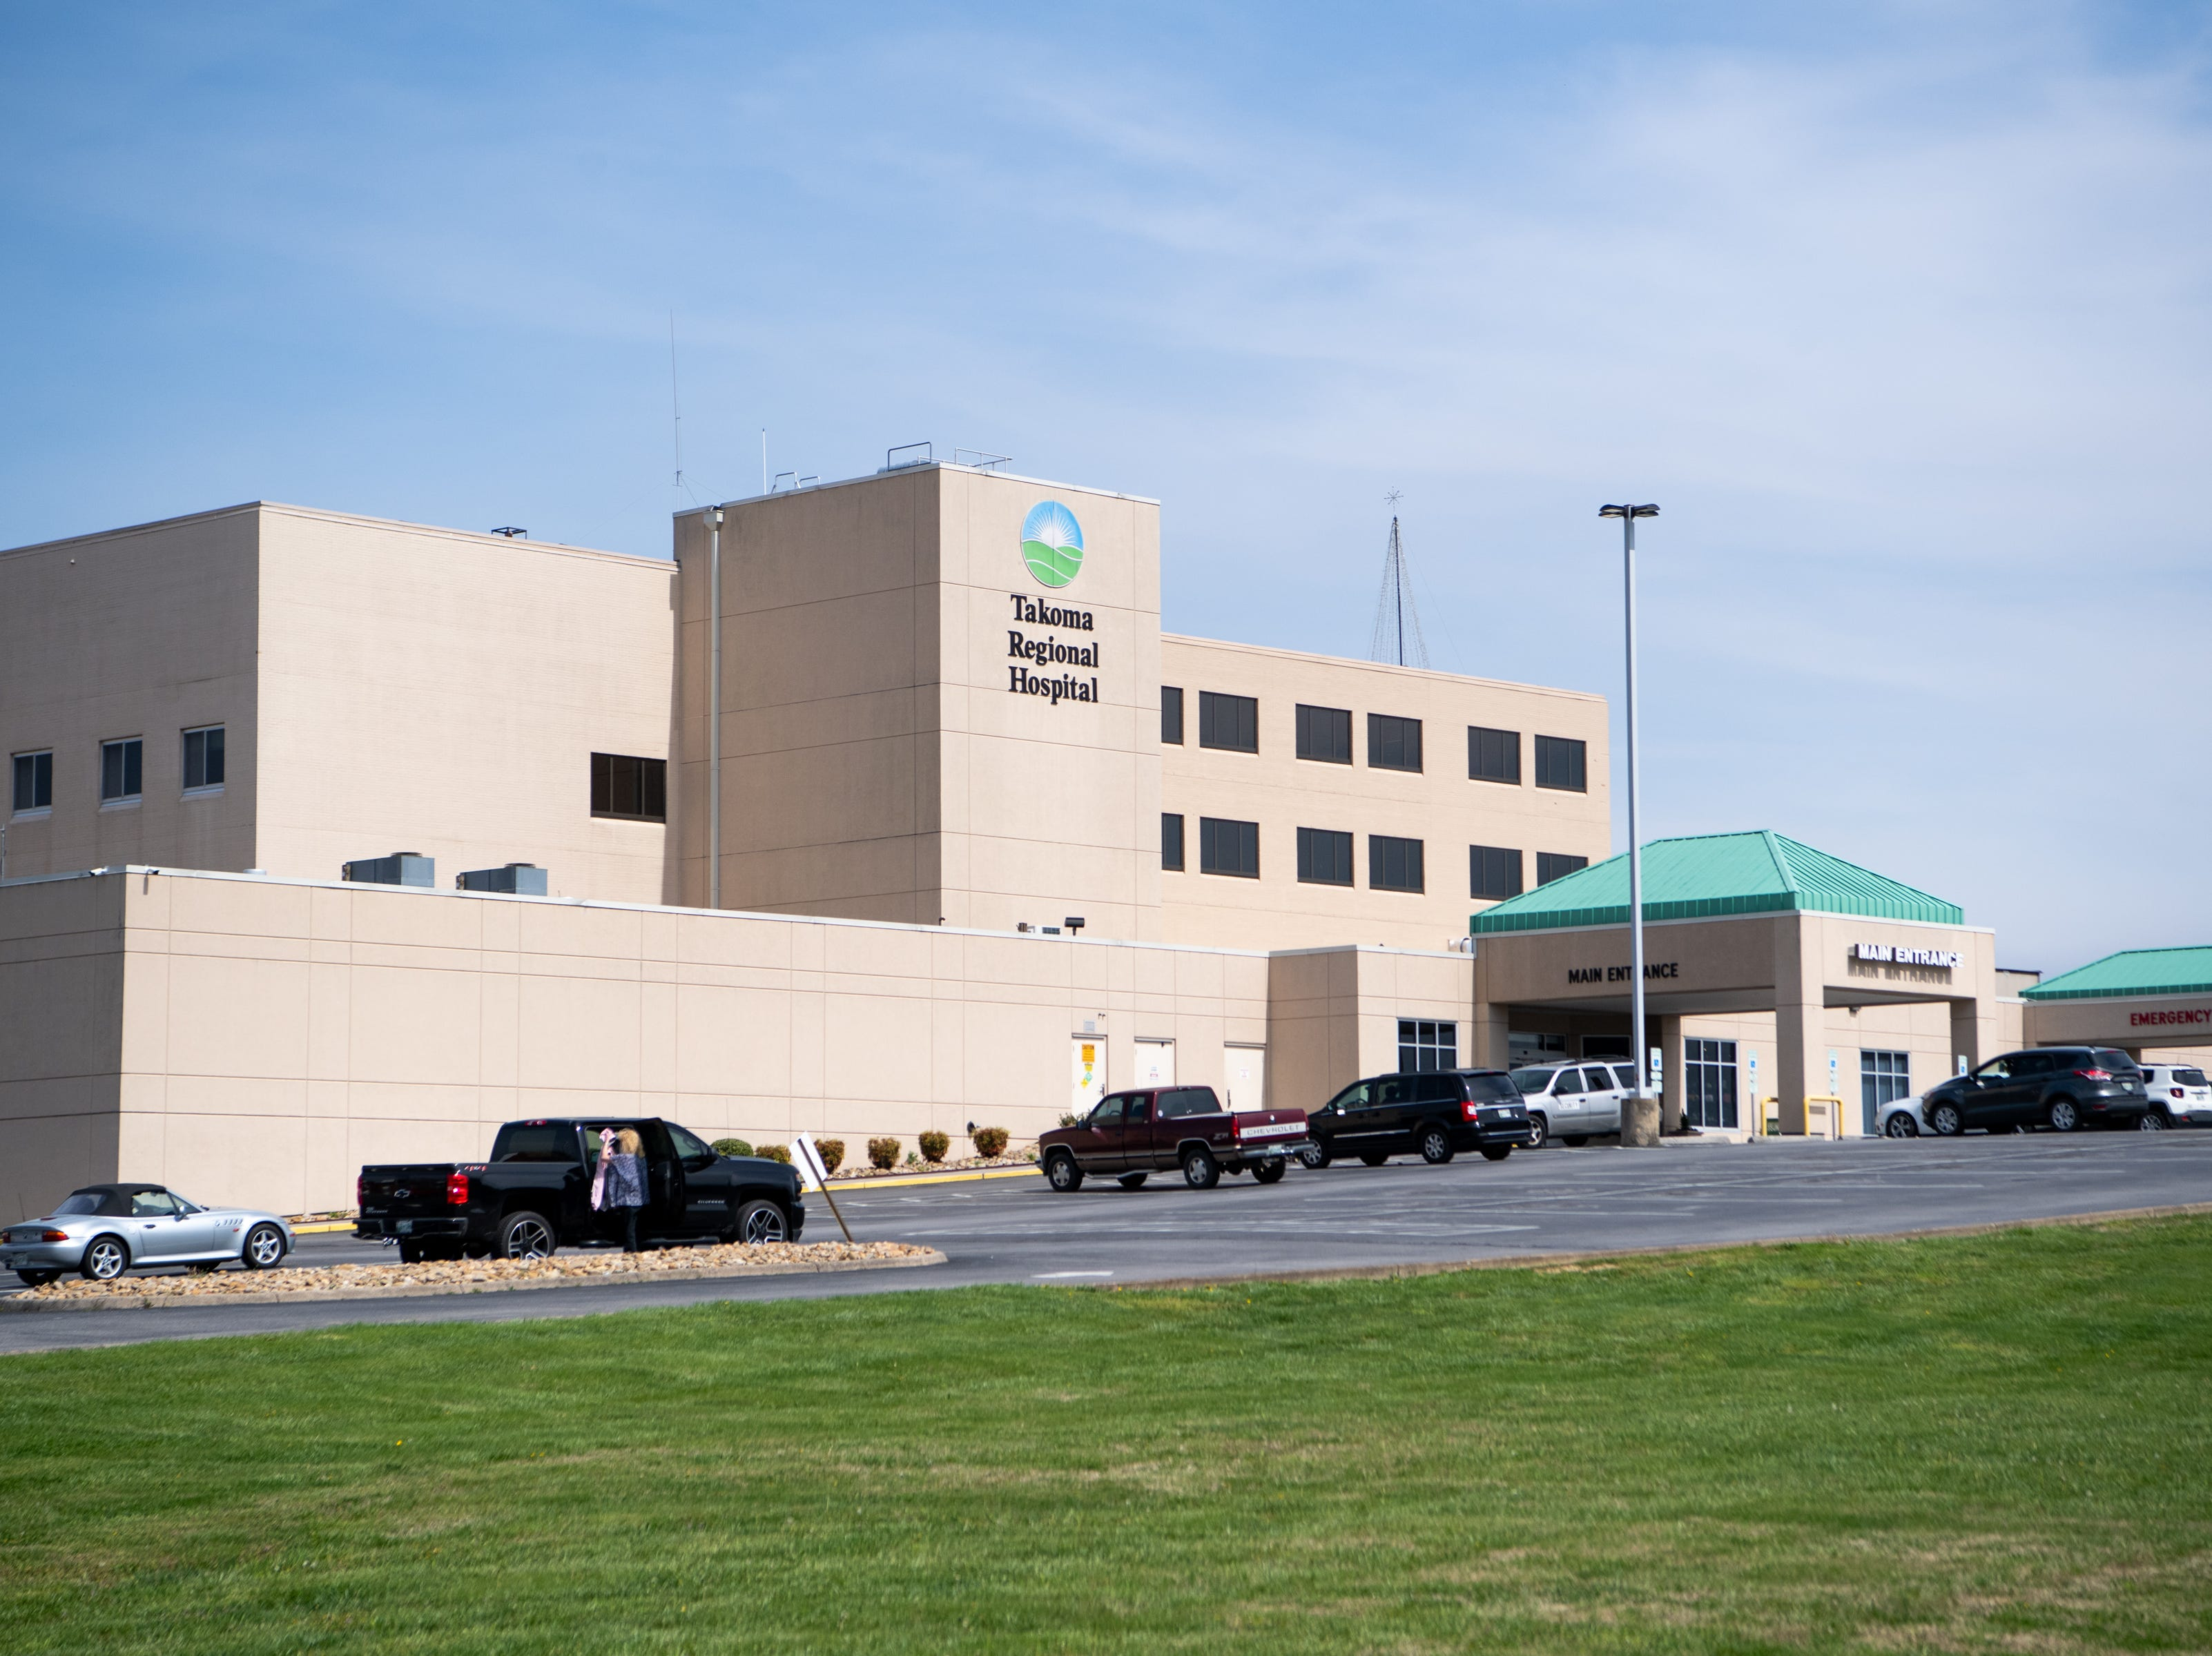 Takoma Regional Hospital, which became Greeneville Community Hospital West in April, is pictured Thursday, April 11, 2019, in Greeneville, Tenn.